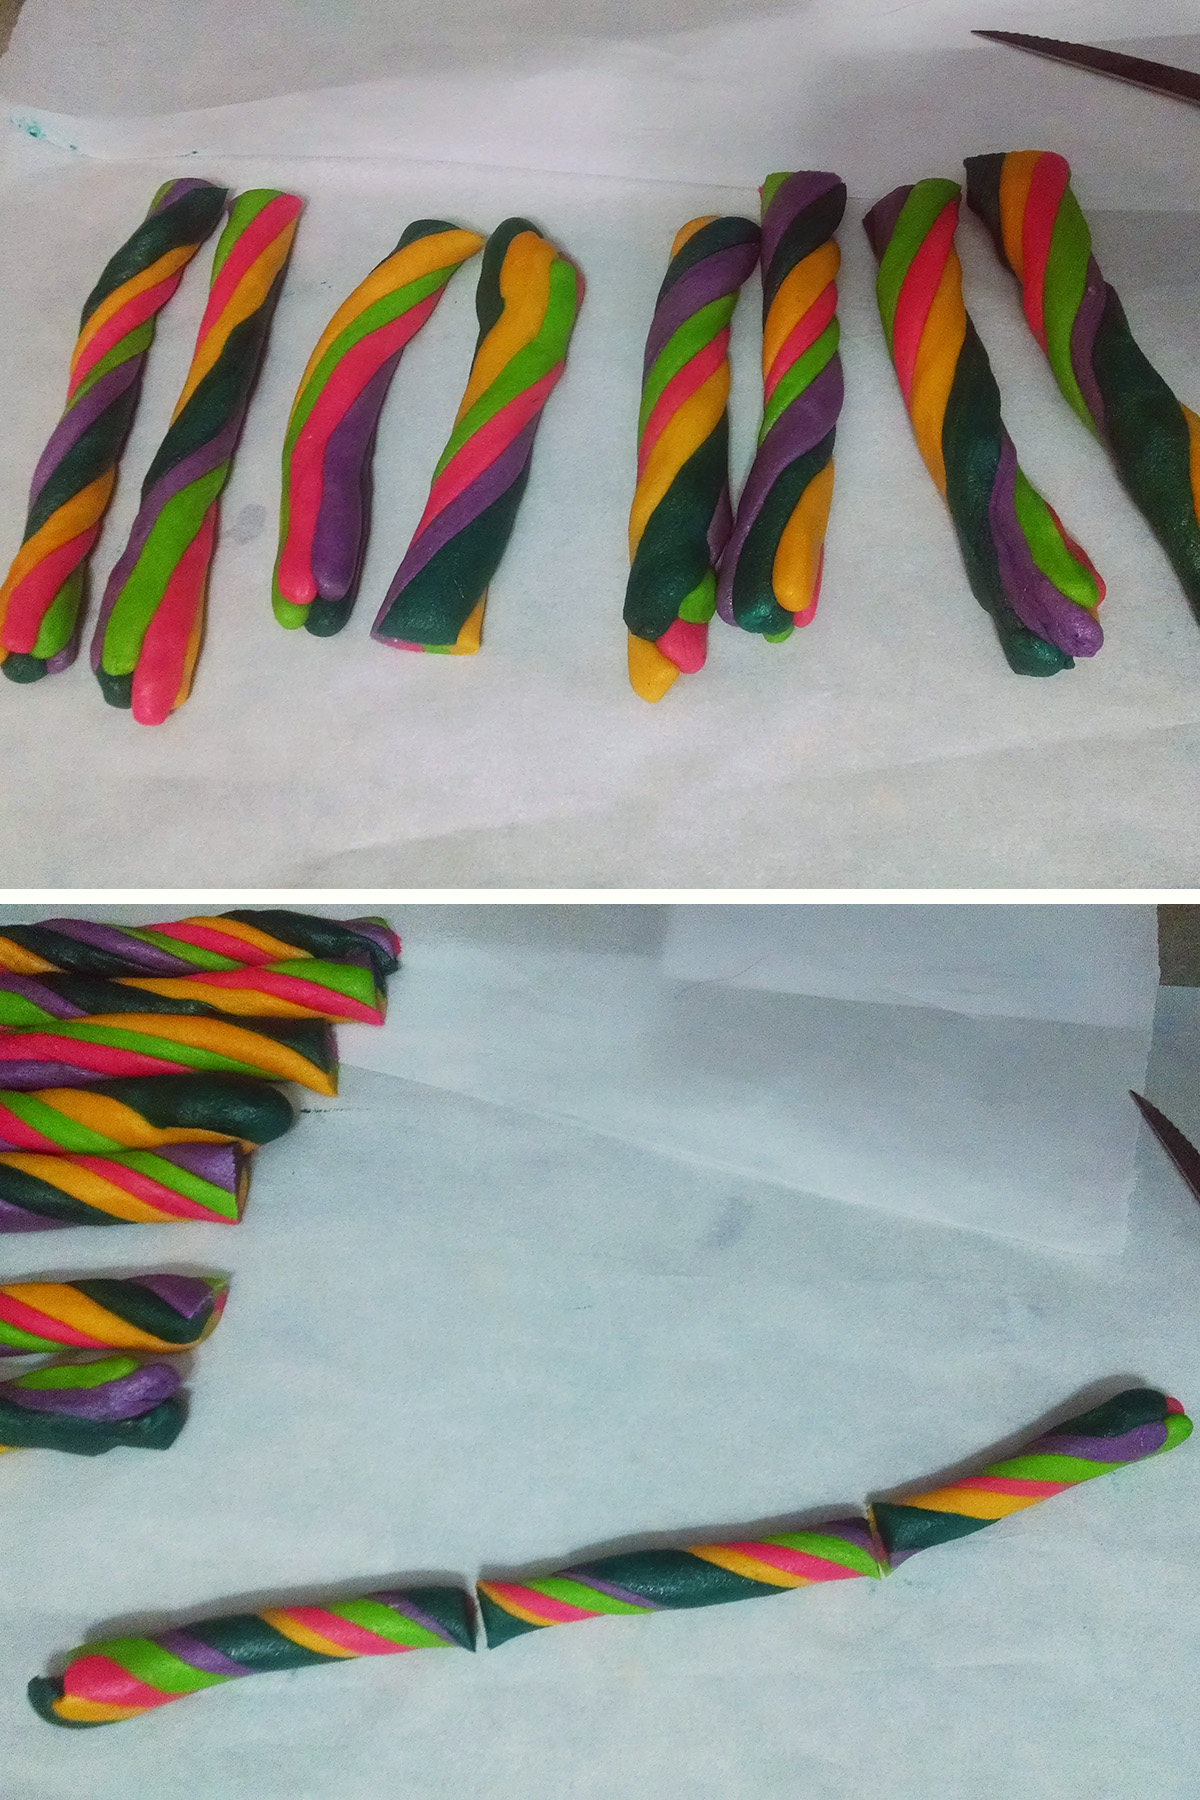 A two part compilation image showing 4 logs of brightly coloured twisted cookie dough on top, then one long, thinner, extra twisted piece on the bottom image.